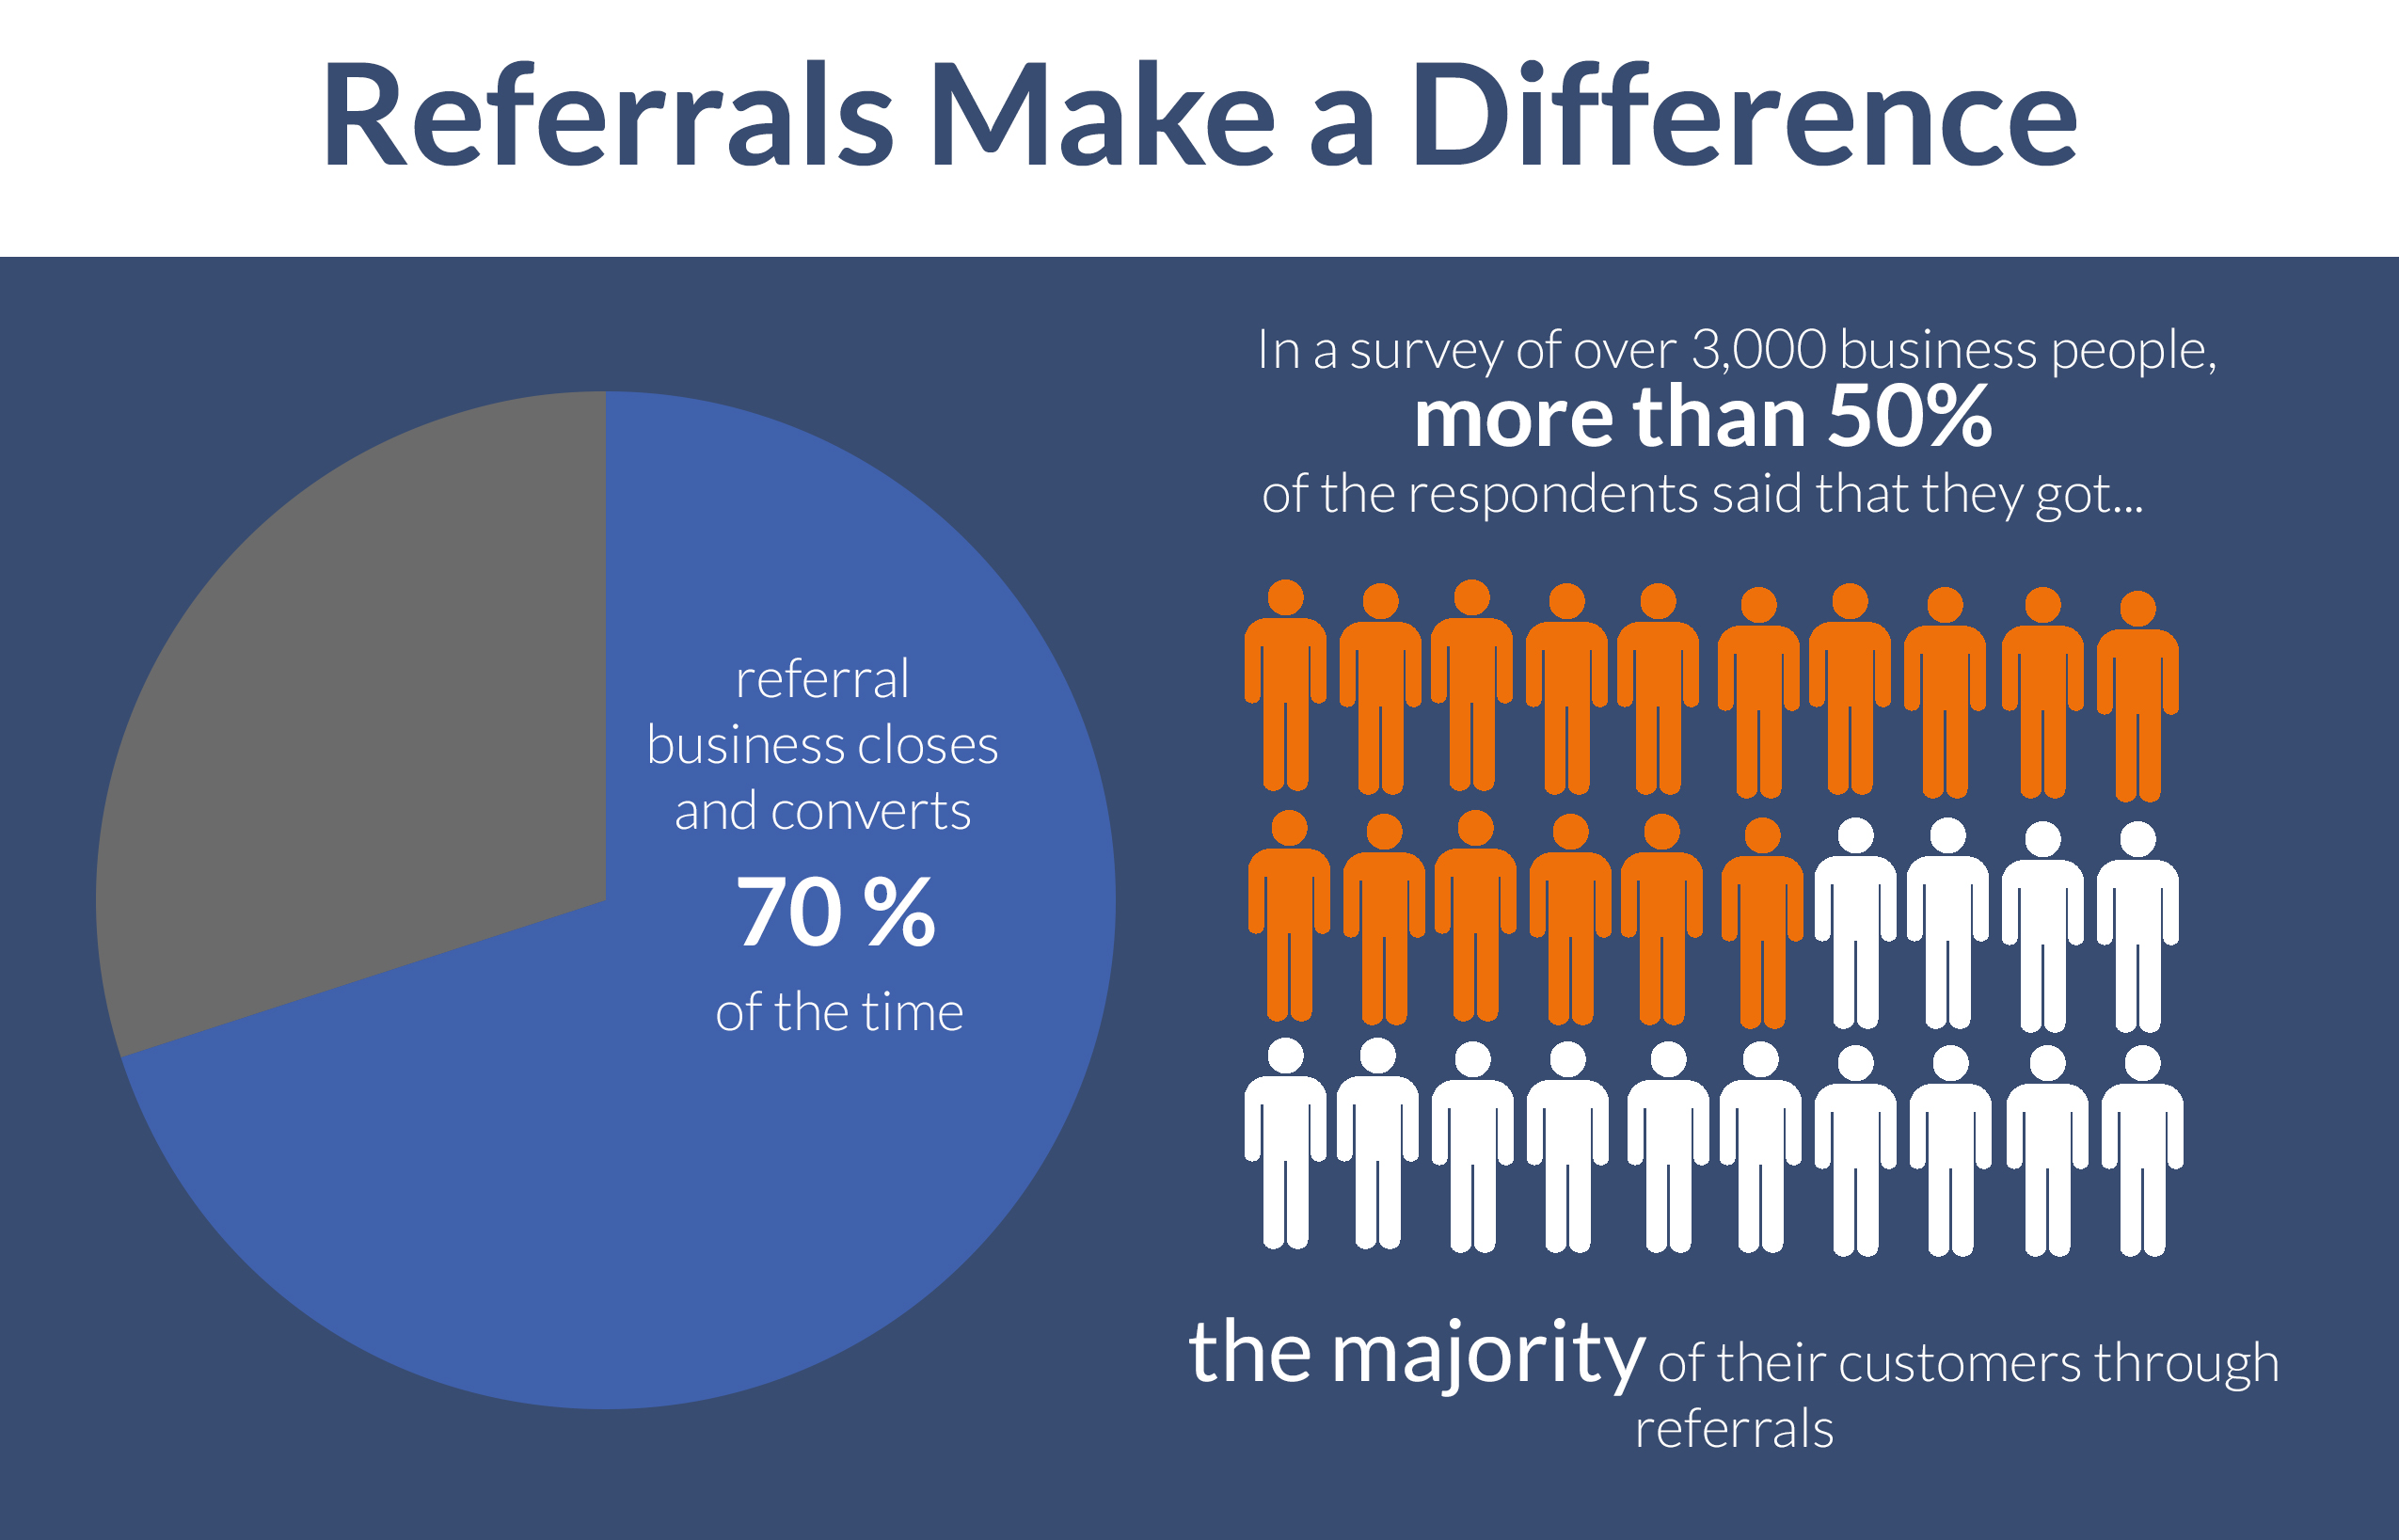 Referrals closes and converts 70% of the time. Once of the possible ways in generating sales leads